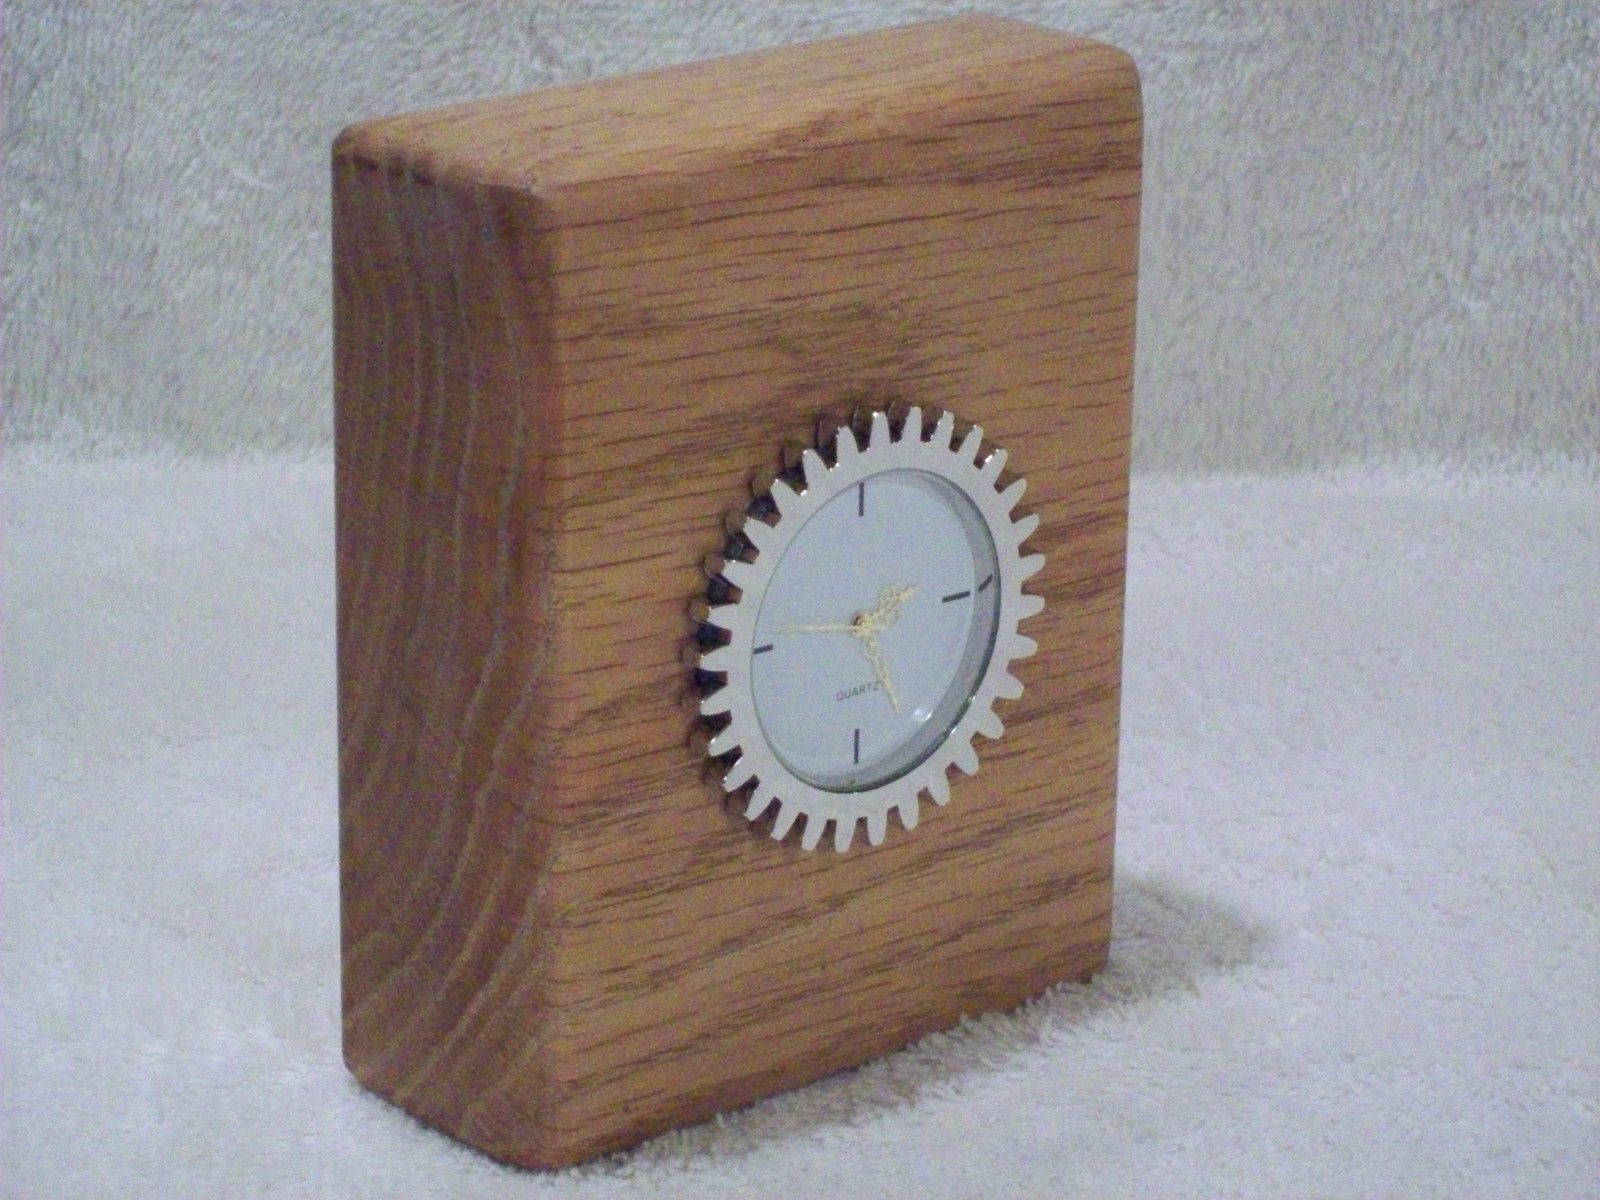 Handmade Solid Oak Wood Desk Table Shelf Clock Metal Gear Insert 4 1/4